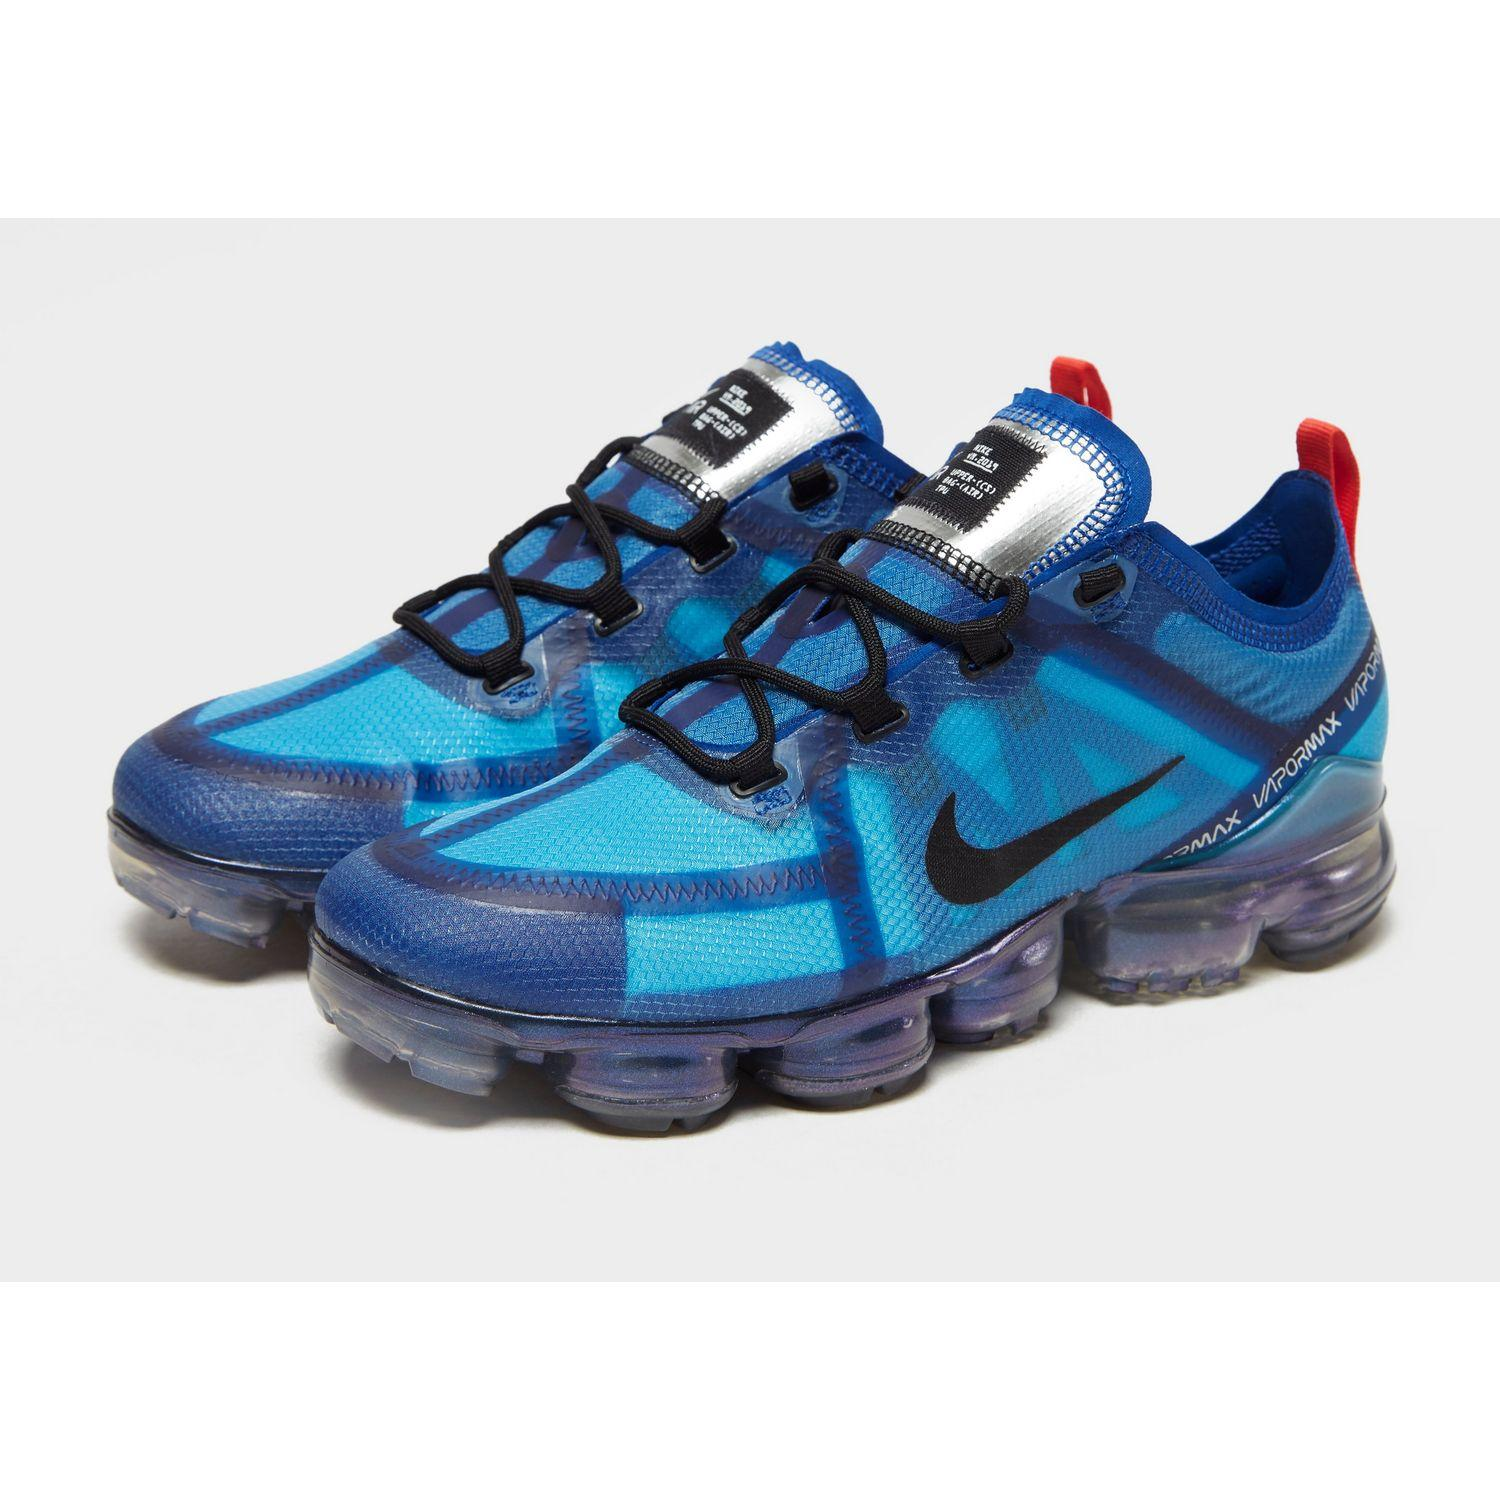 quality design 5845a b5d88 Nike Air Vapormax 2019 in Blue for Men - Lyst